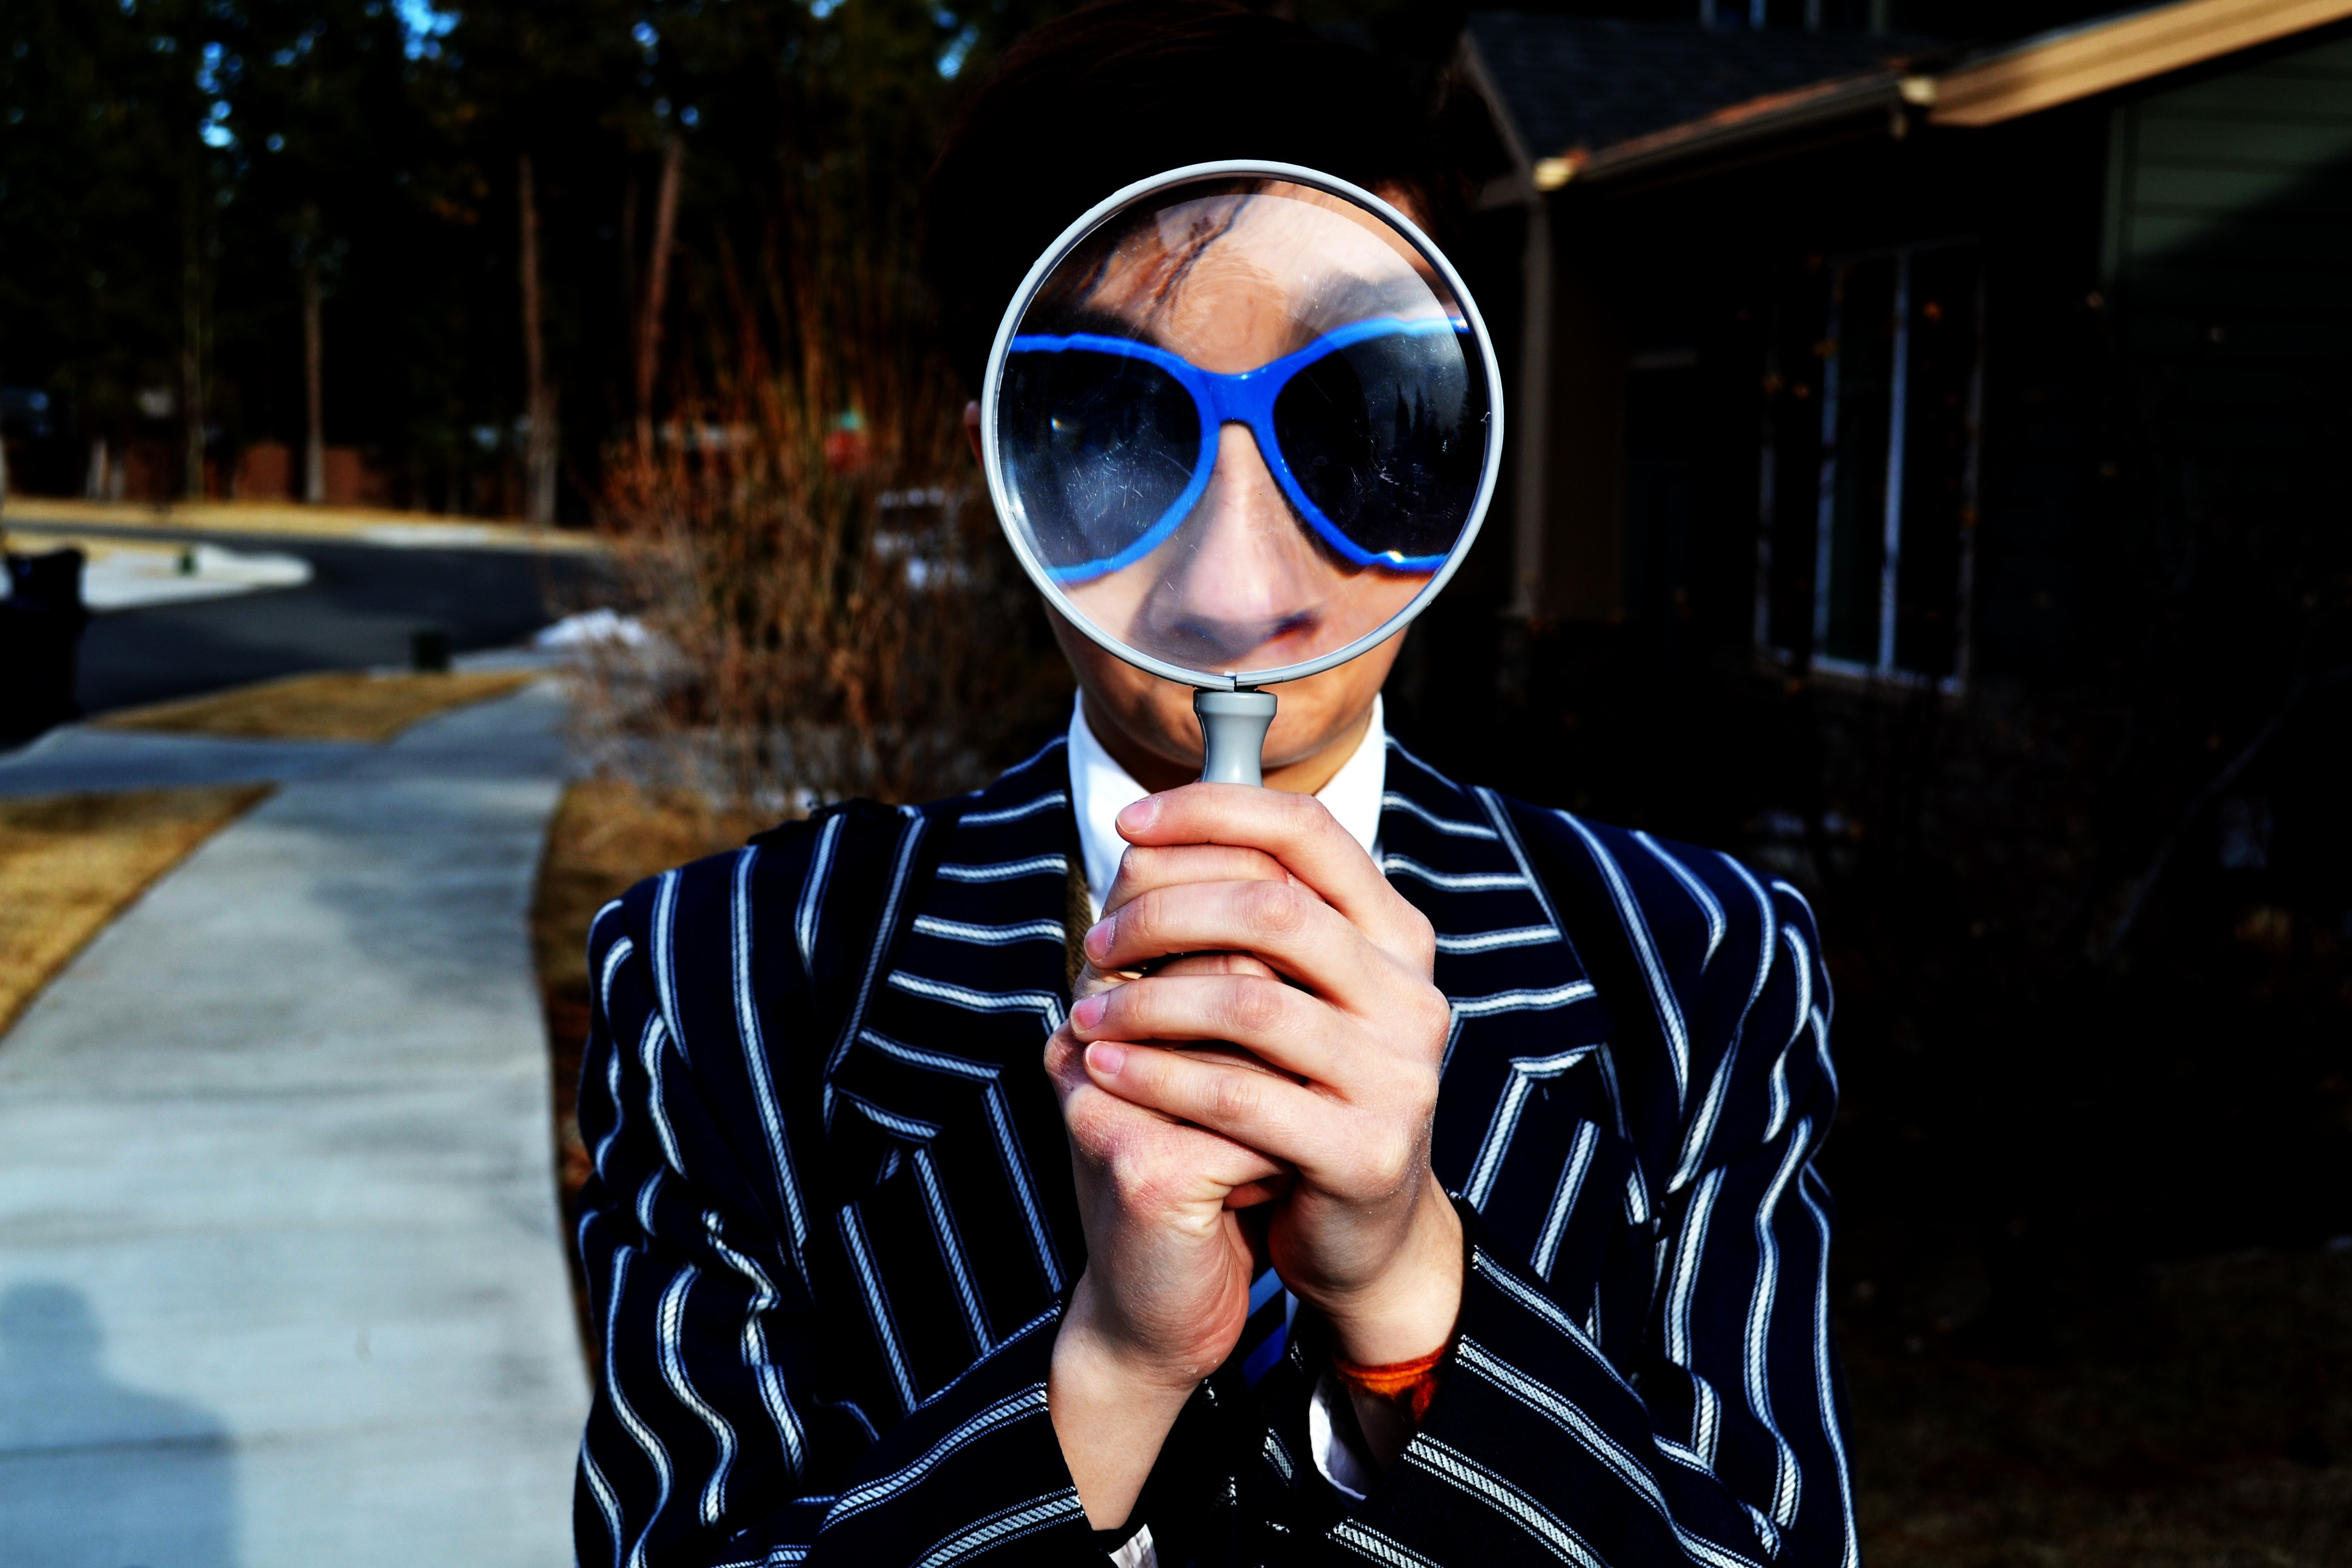 A person holding a magnifying glass, wearing a striped suit and blue sunglasses in Bend